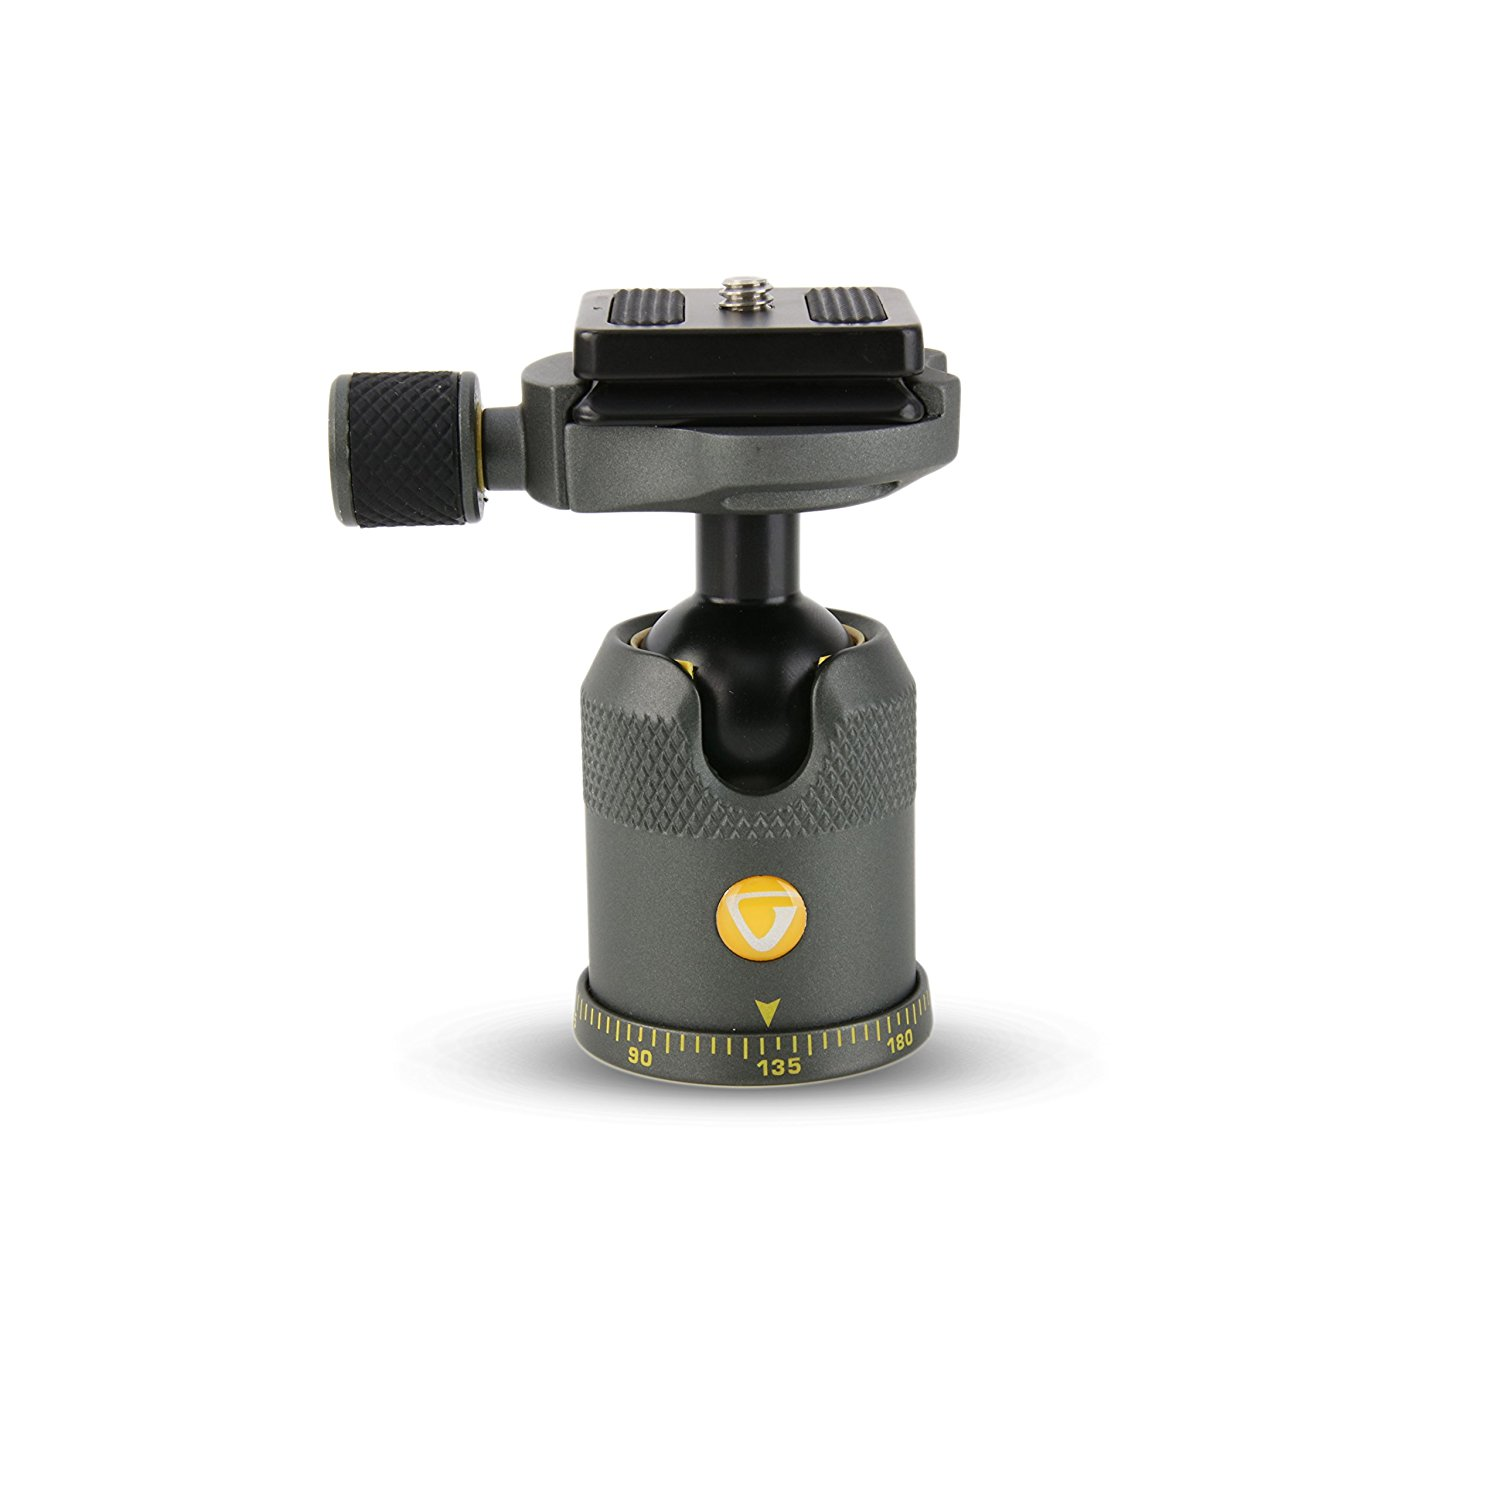 Vanguard VEO 2 Ball Tripod Head, Gray (VEO 2 BH-45)